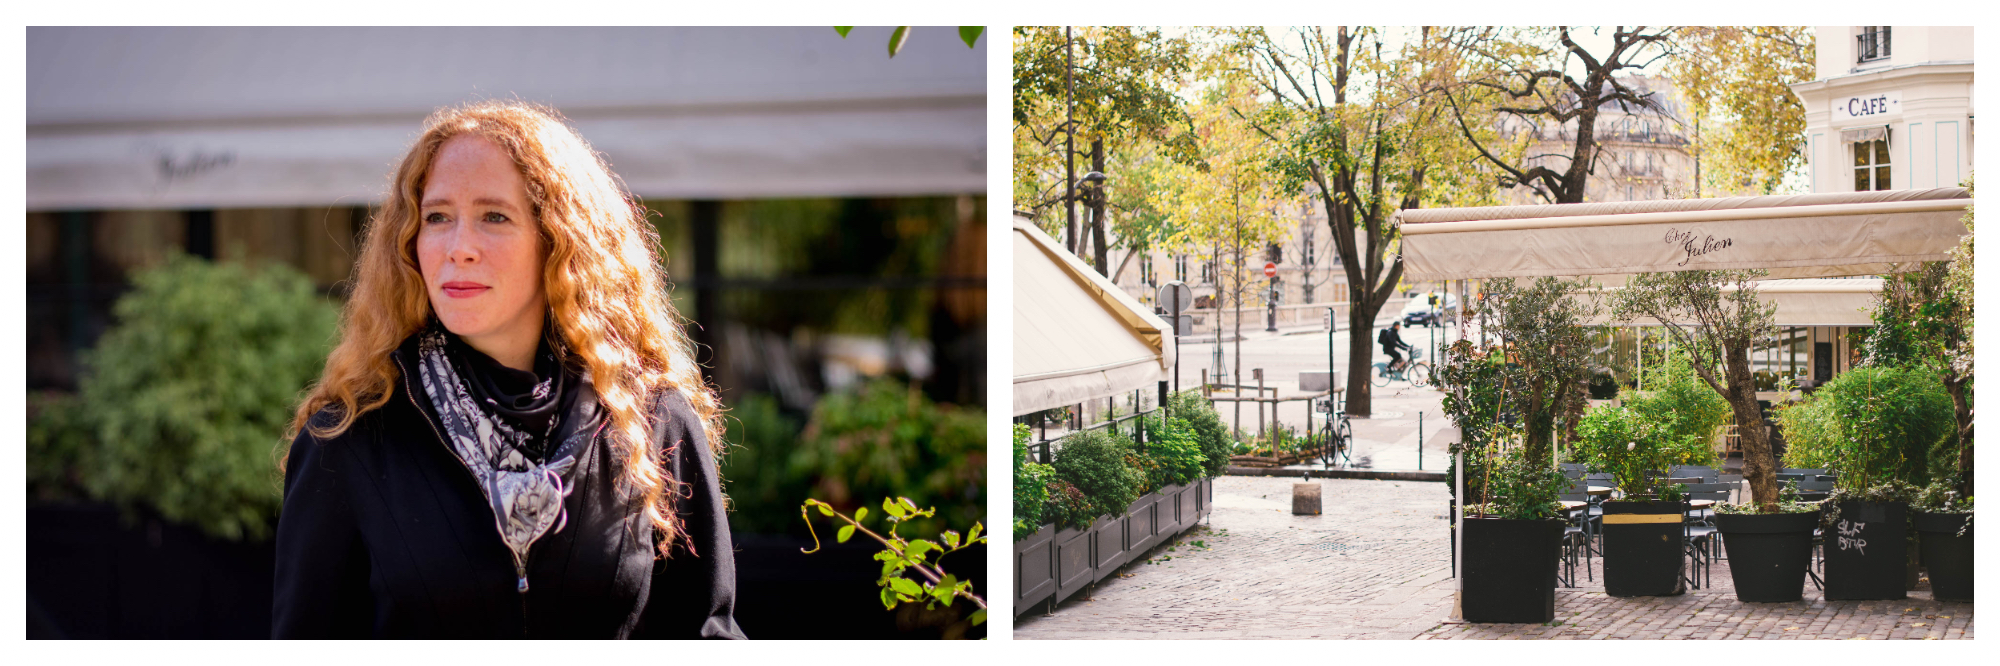 On left: Jane Bertch, founder of La Cuisine Paris cooking school, enjoys a sunny fall afternoon in the streets of Paris. On right: A quiet moment at rue des Barres, a small side street by the Seine in Paris' 4th arrondissement.